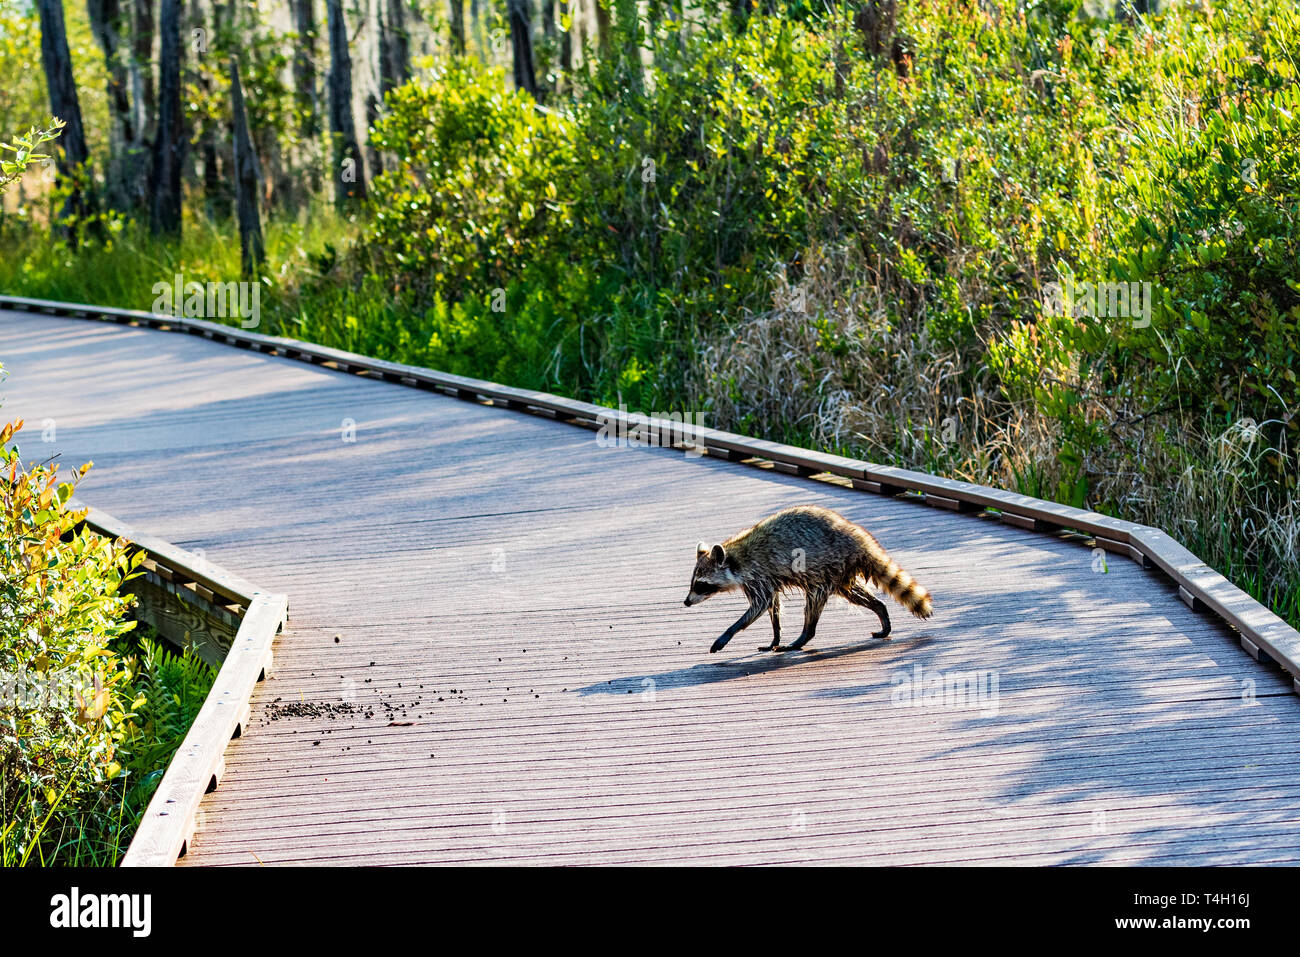 Okefenokee Swamp, Folkston, GA, USA-3/30/19: An American raccoon, dripping wet from the swamp, crosses a tourist boardwalk in Okefenokee swamp. Stock Photo